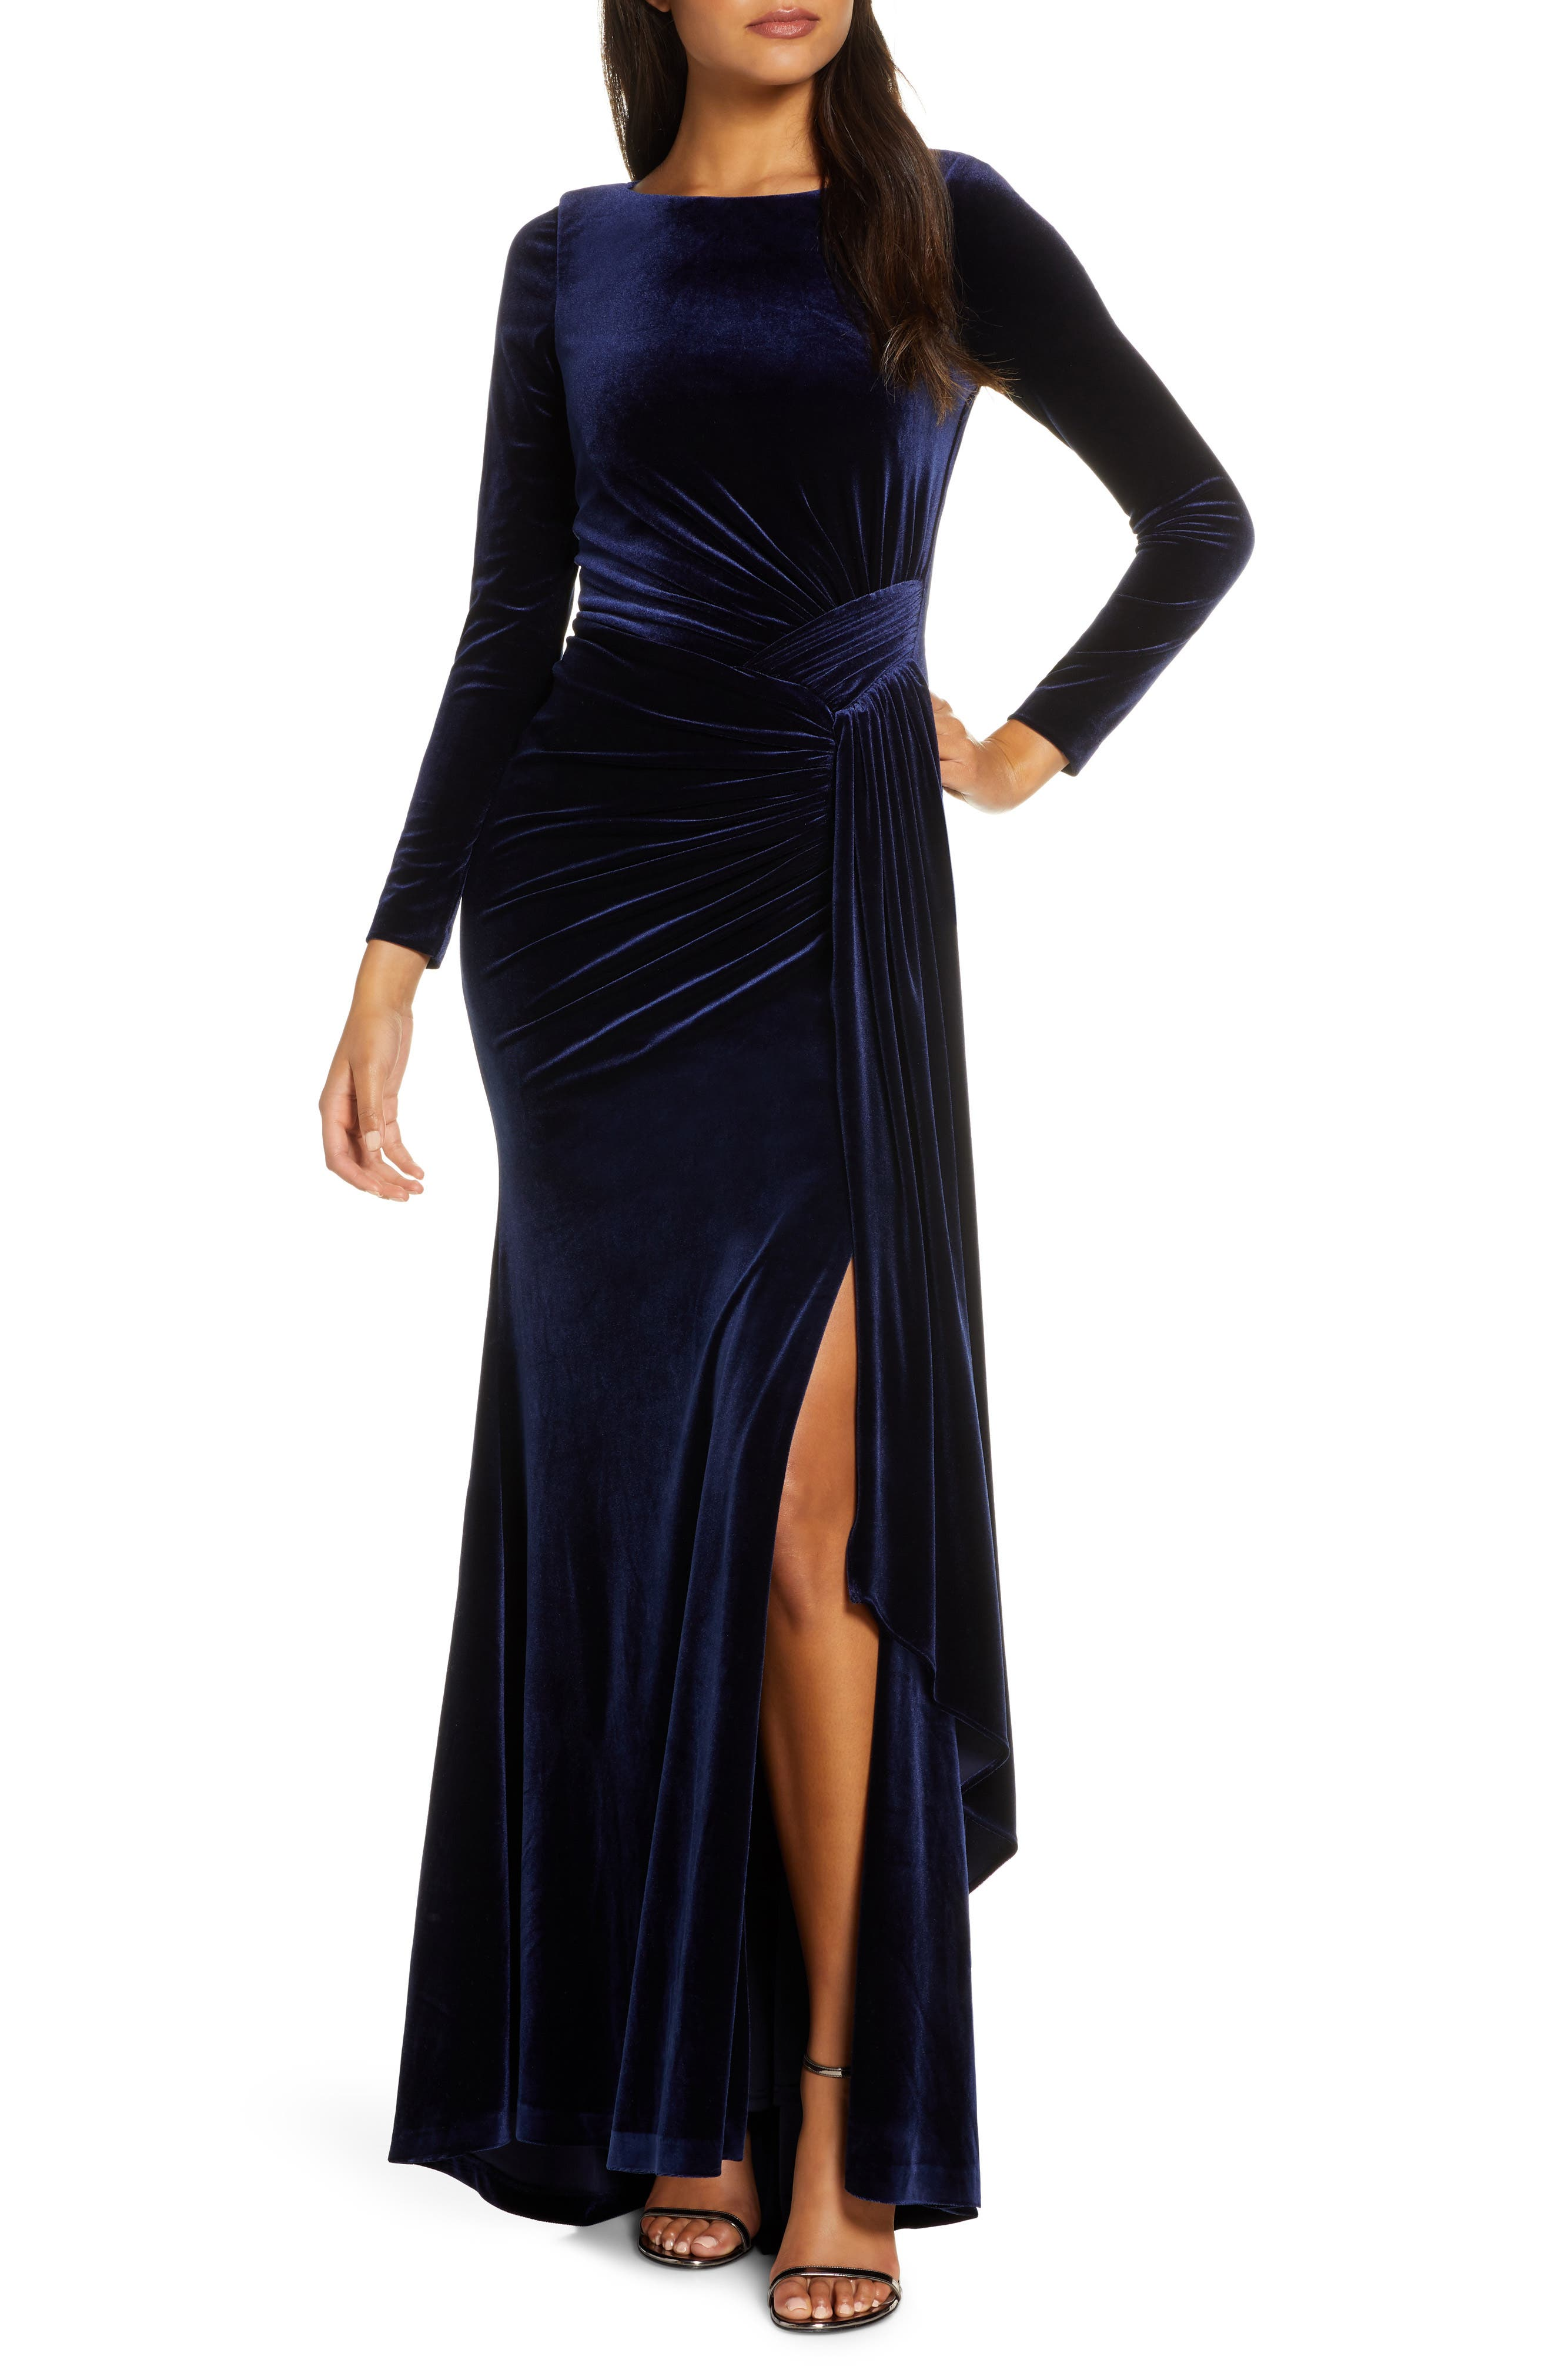 1940s Evening, Prom, Party, Formal, Ball Gowns Womens Vince Camuto Long Sleeve Velvet Gown Size 16 - Blue $228.00 AT vintagedancer.com